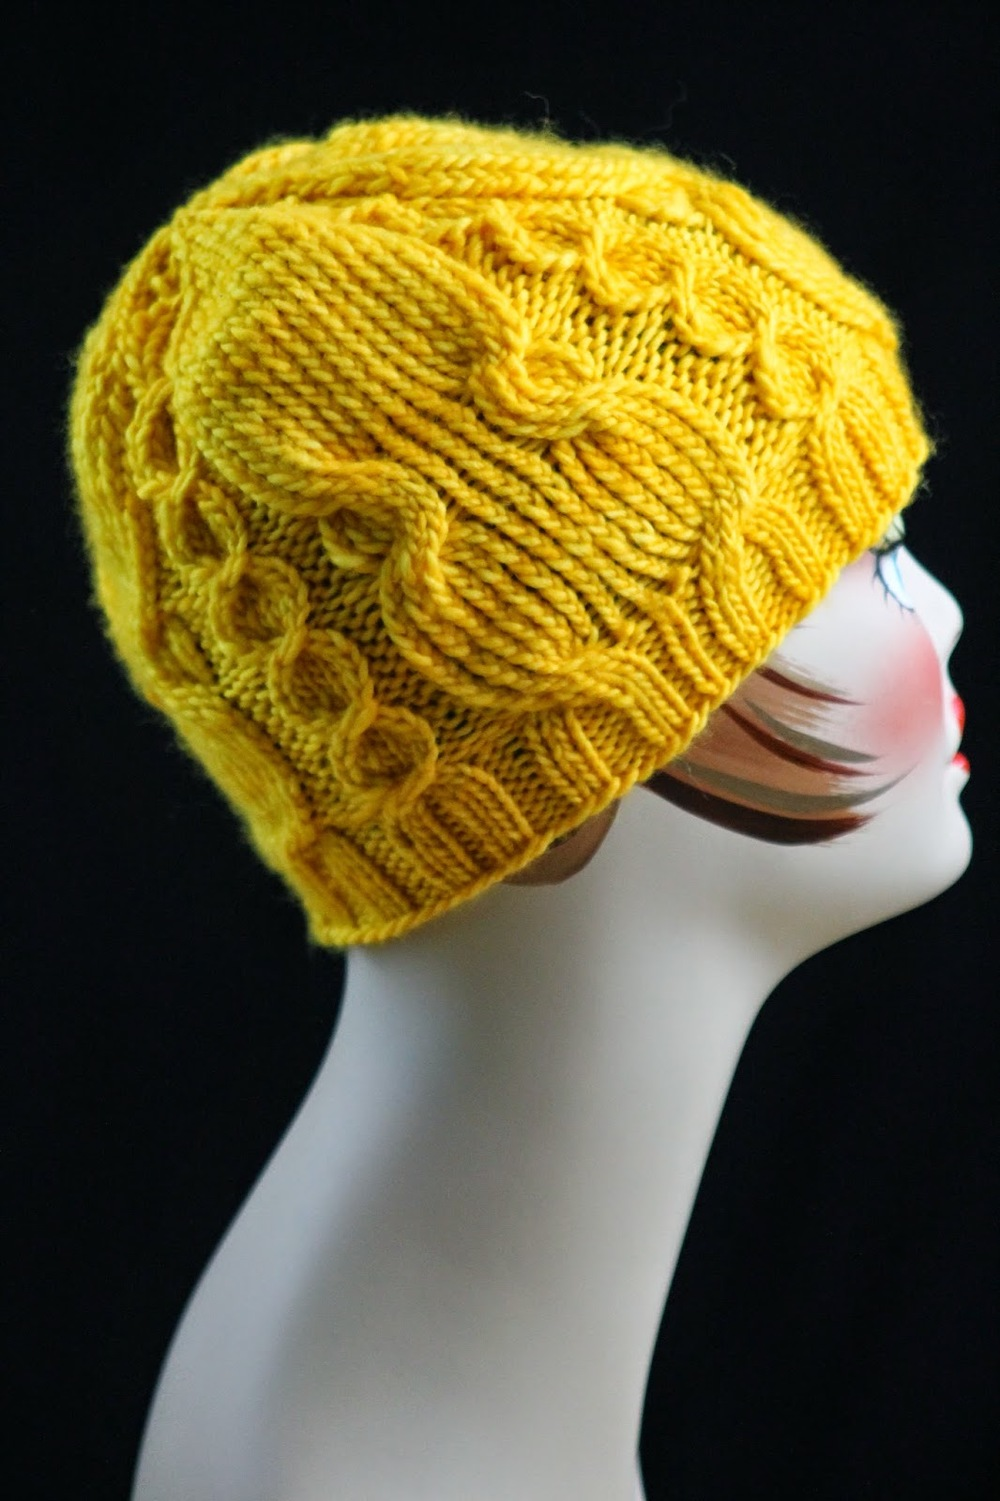 Home > Hats > 66+ Knit Hat Patterns for Winter 66+ Knit Hat Patterns for Winter These knitted hats are the perfect way to keep your head warm while still looking stylish.